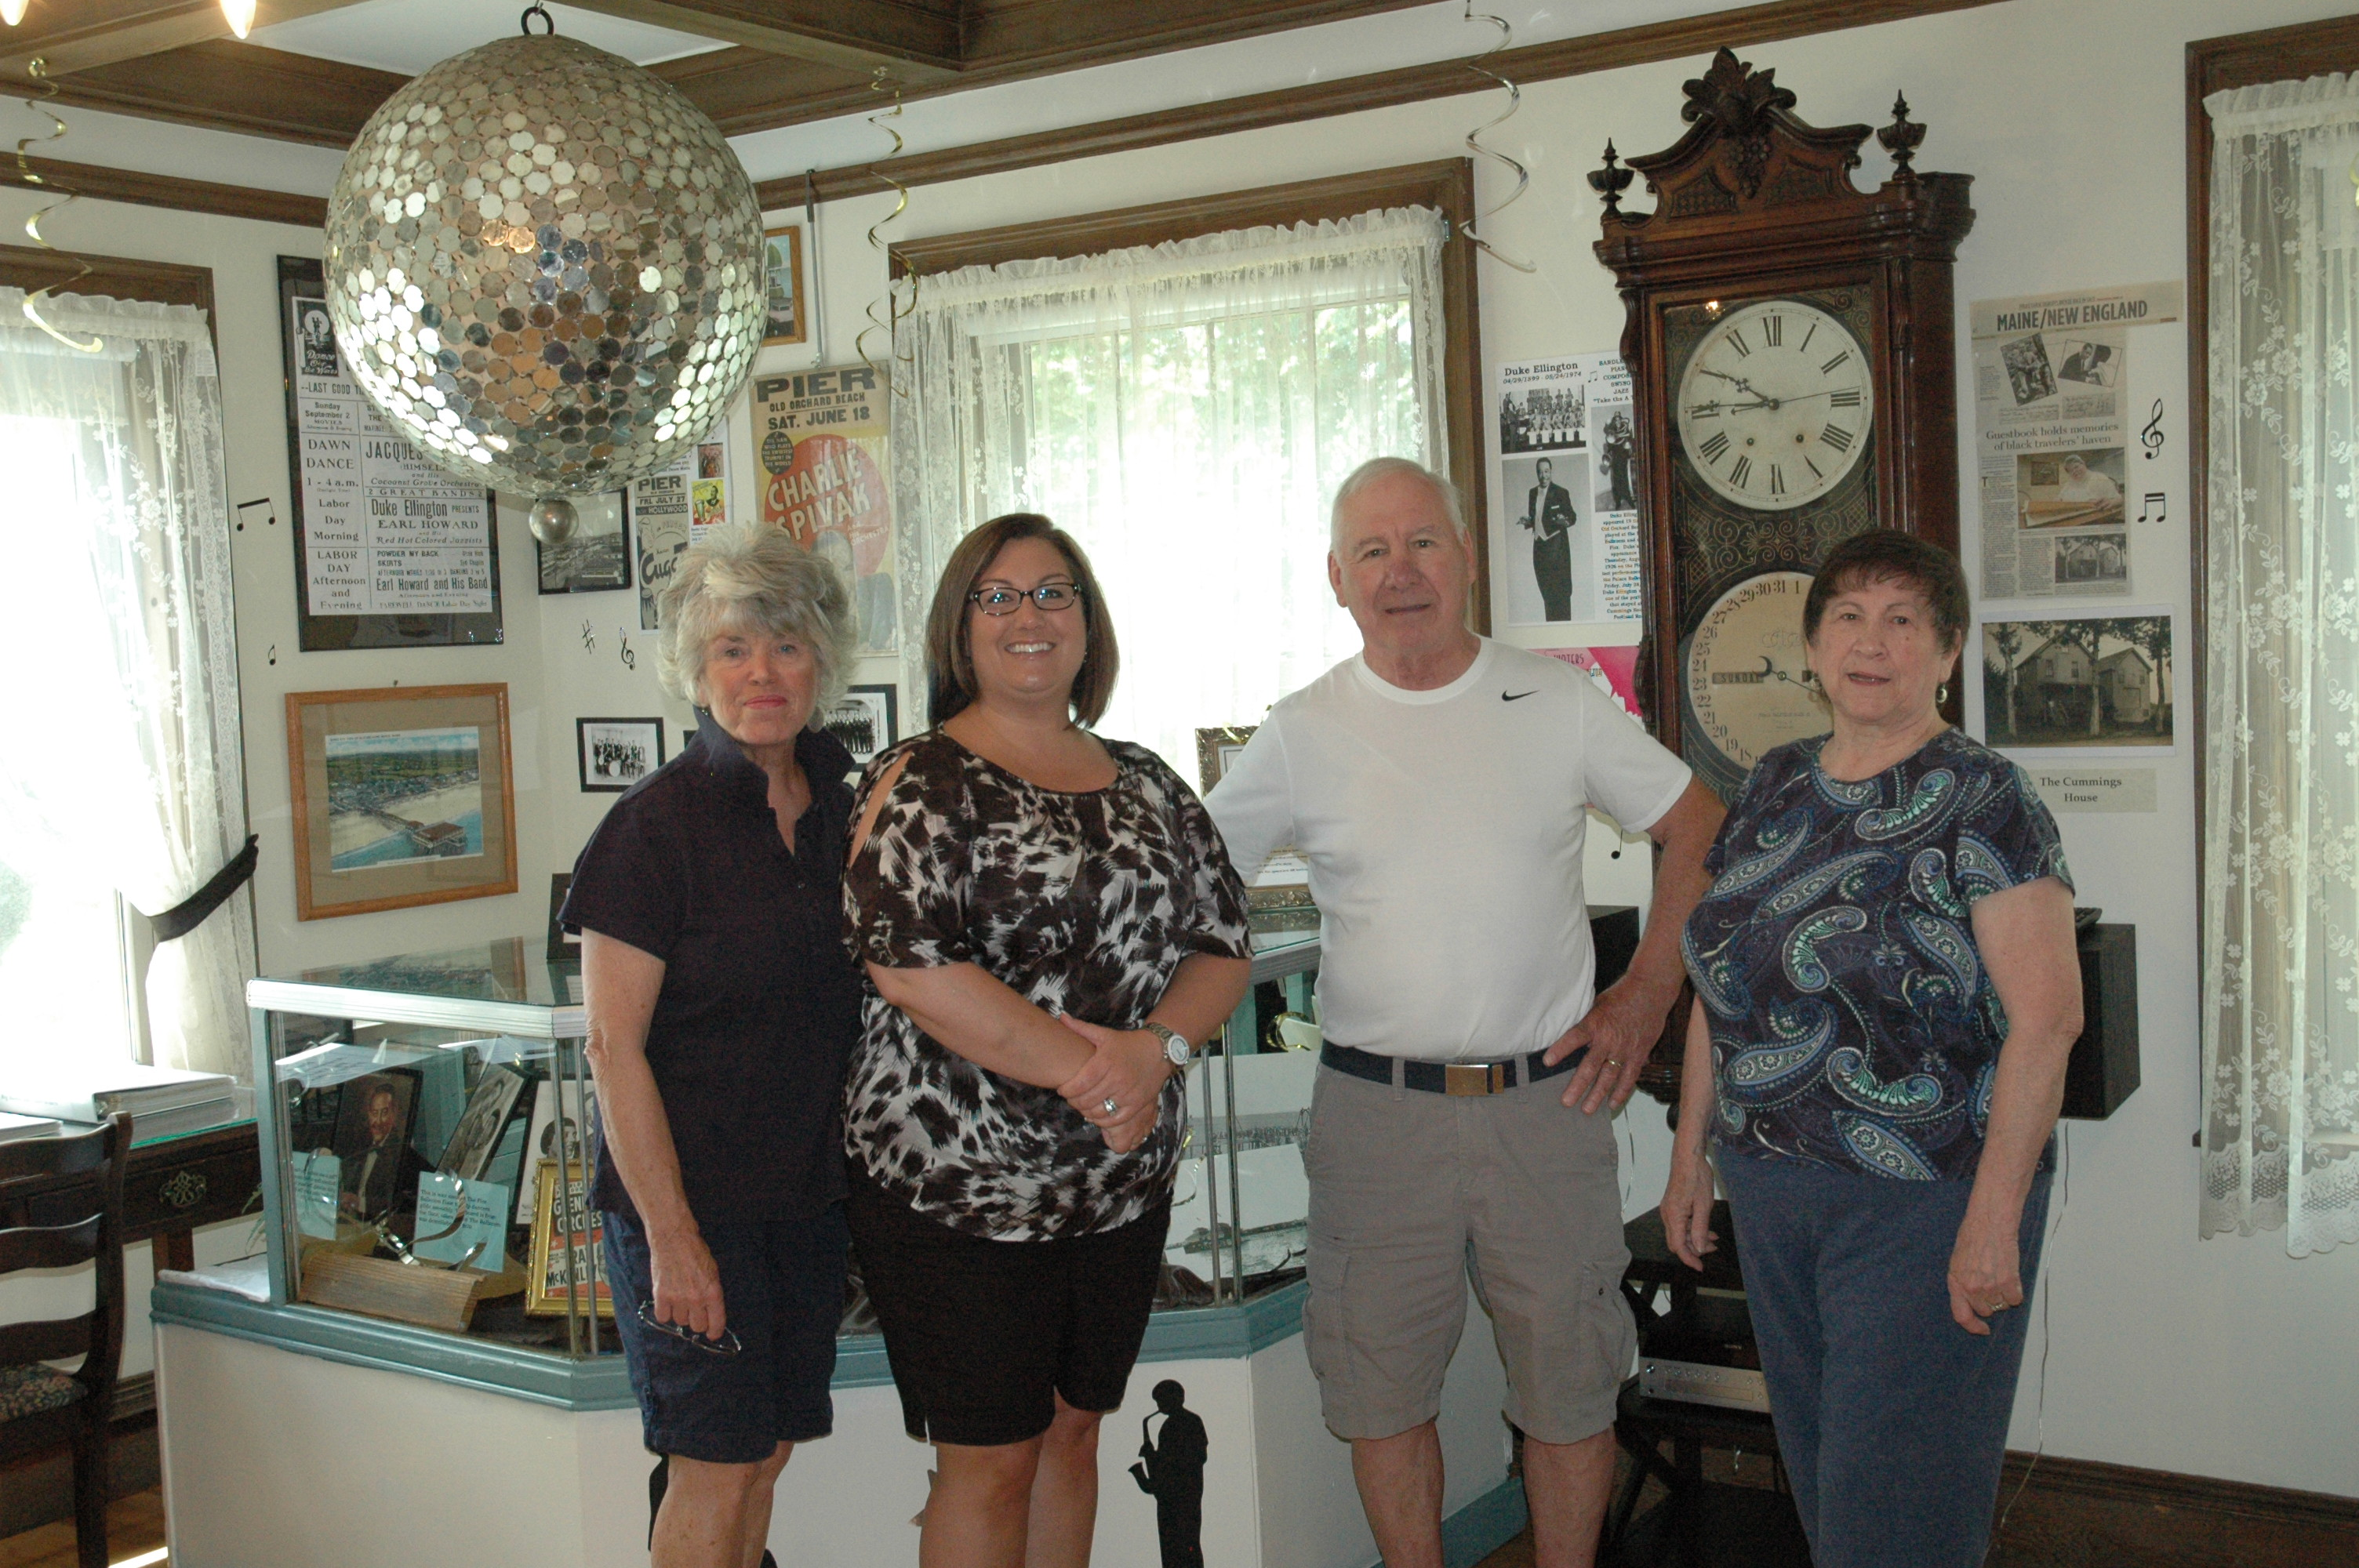 Harmon Museum volunteers Jaynie Flaherty and Audra Blaney Higgins, Town Historian Dan Blaney and Harmon Museum Curator Jeanne Guerin at the museum in Old Orchard Beach on Monday.LIZ GOTTHELF/Journal Tribune